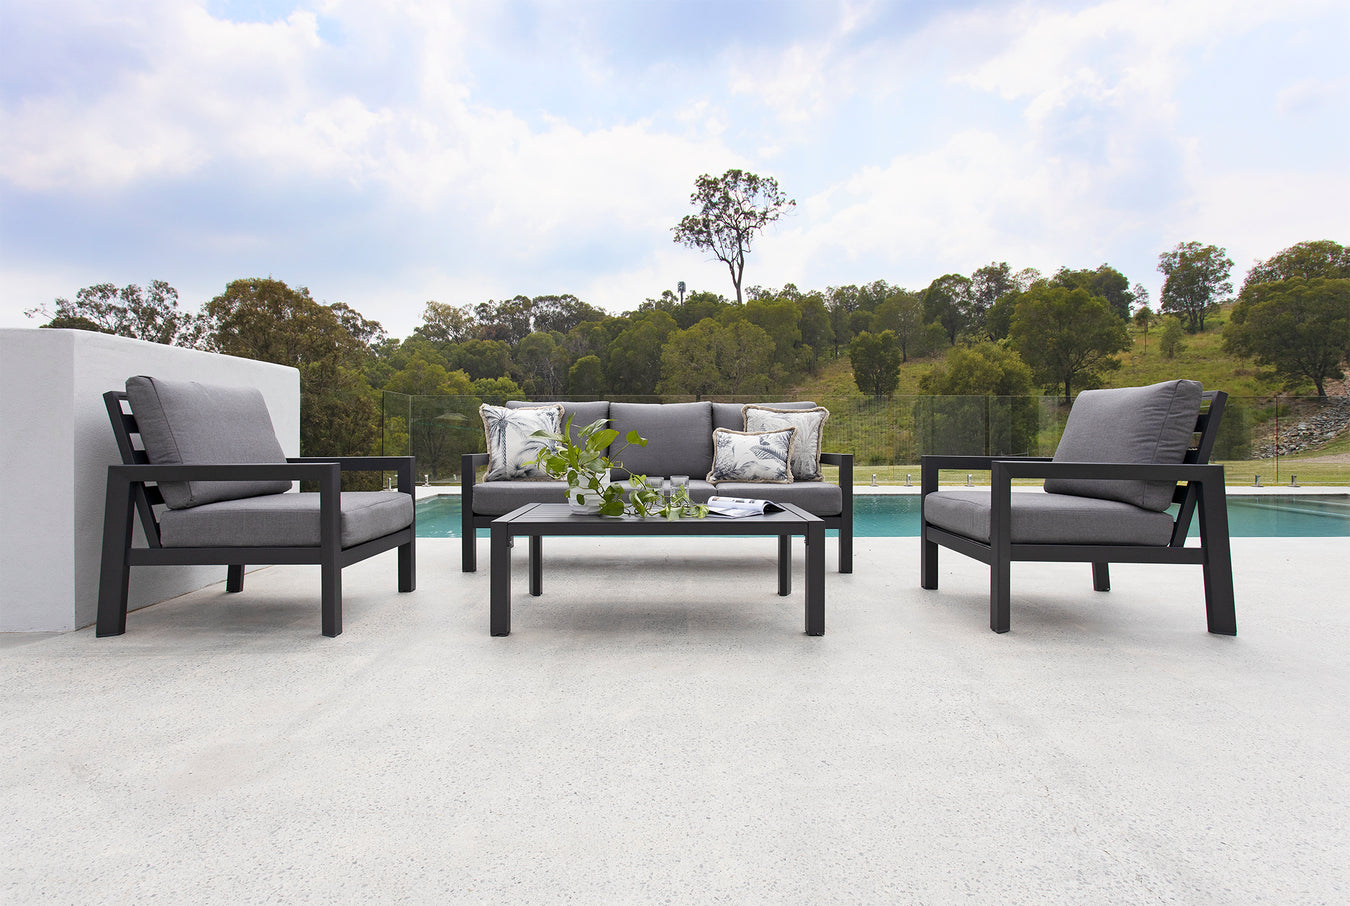 Elements Outdoor Living - Colada 4pce Set with 3 seater lounge